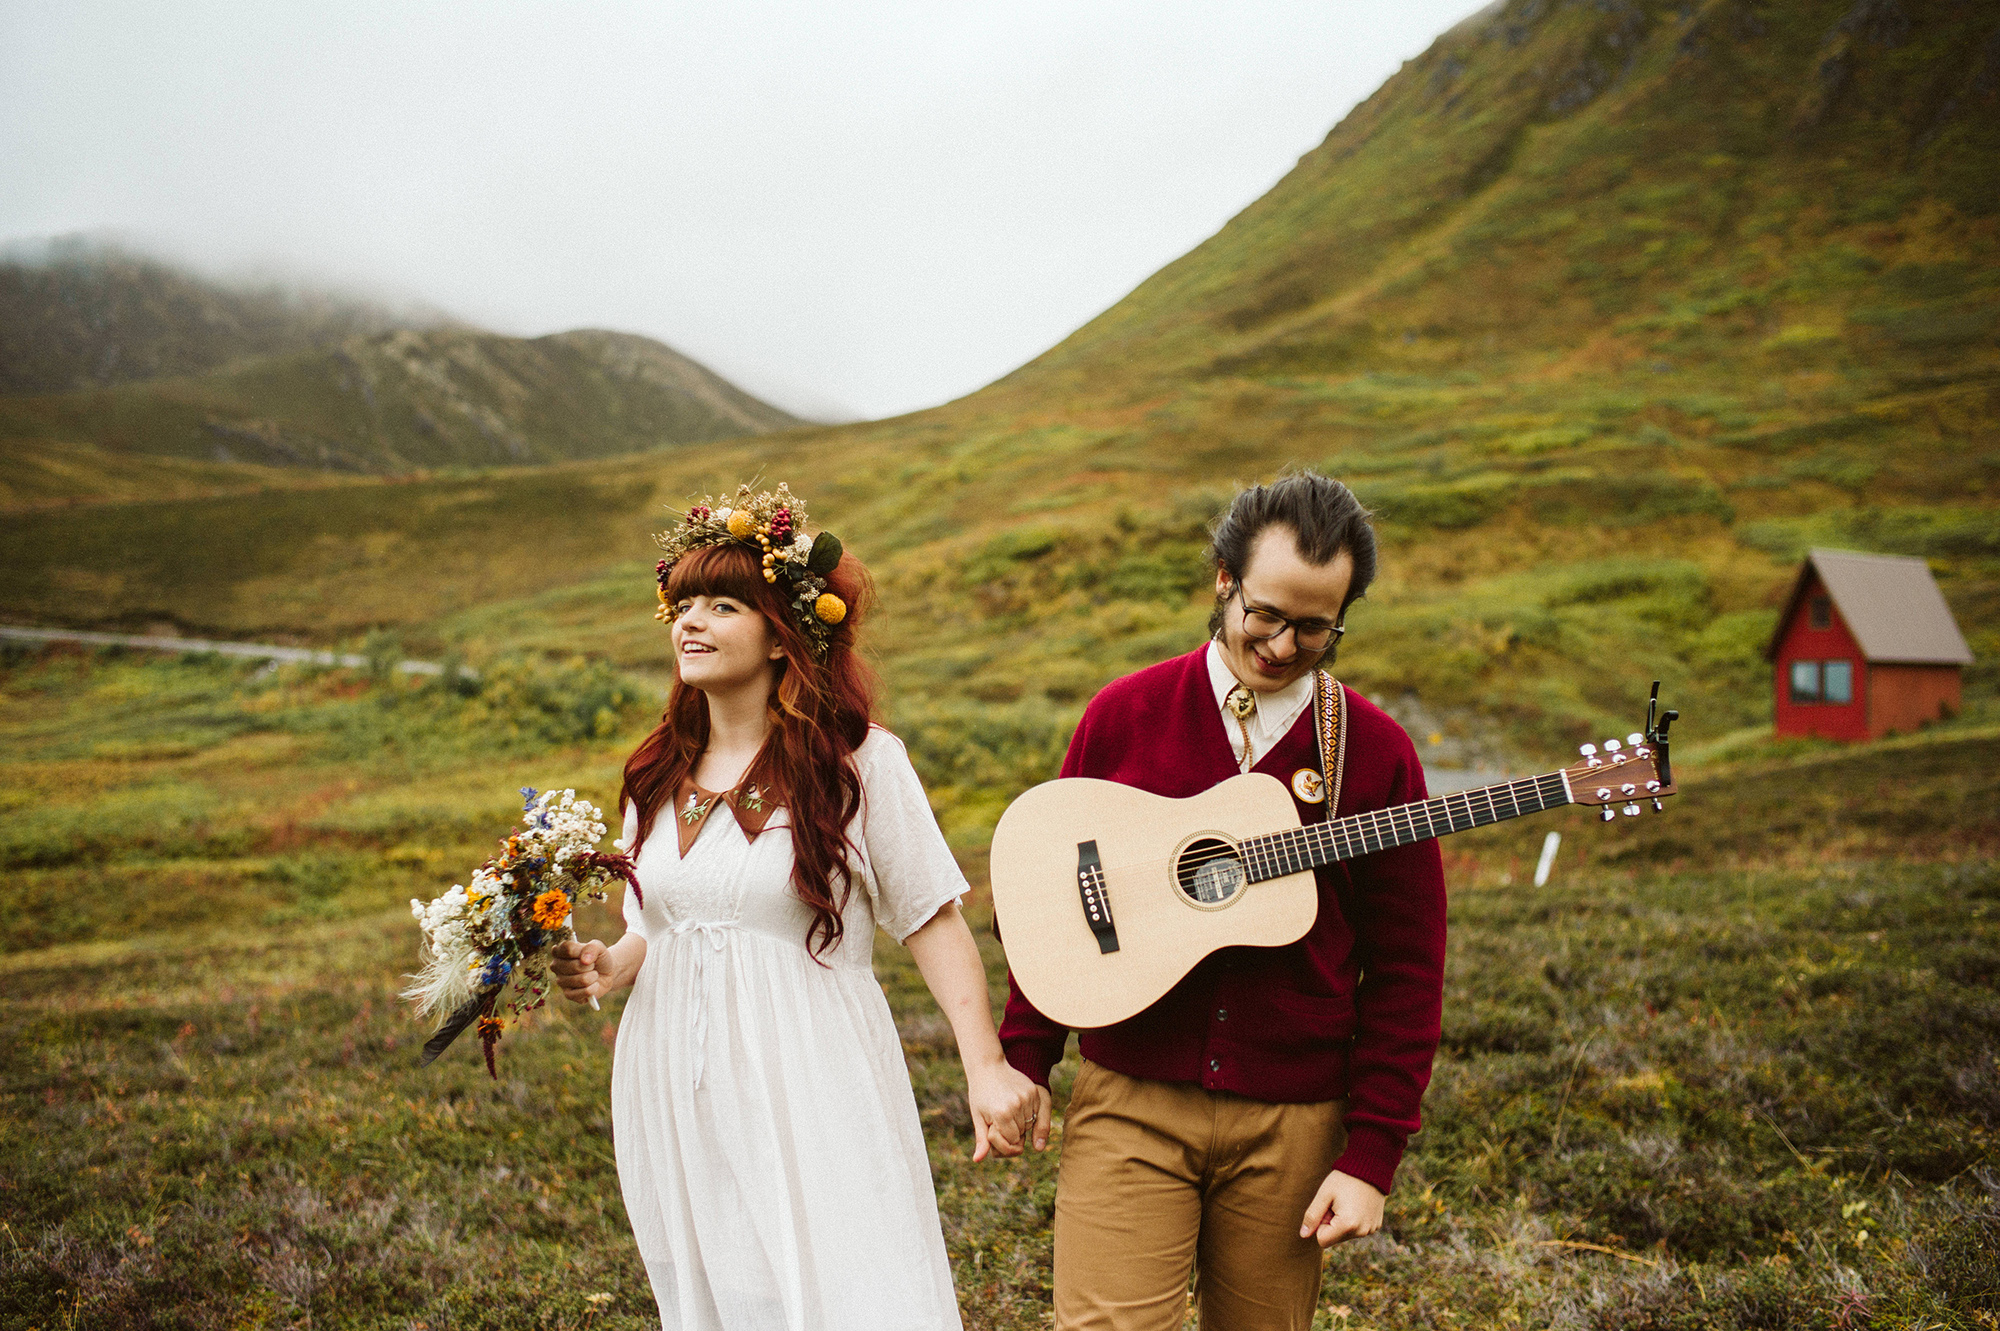 A wedding couple is holding hands and walking through a meadow in the mountains.